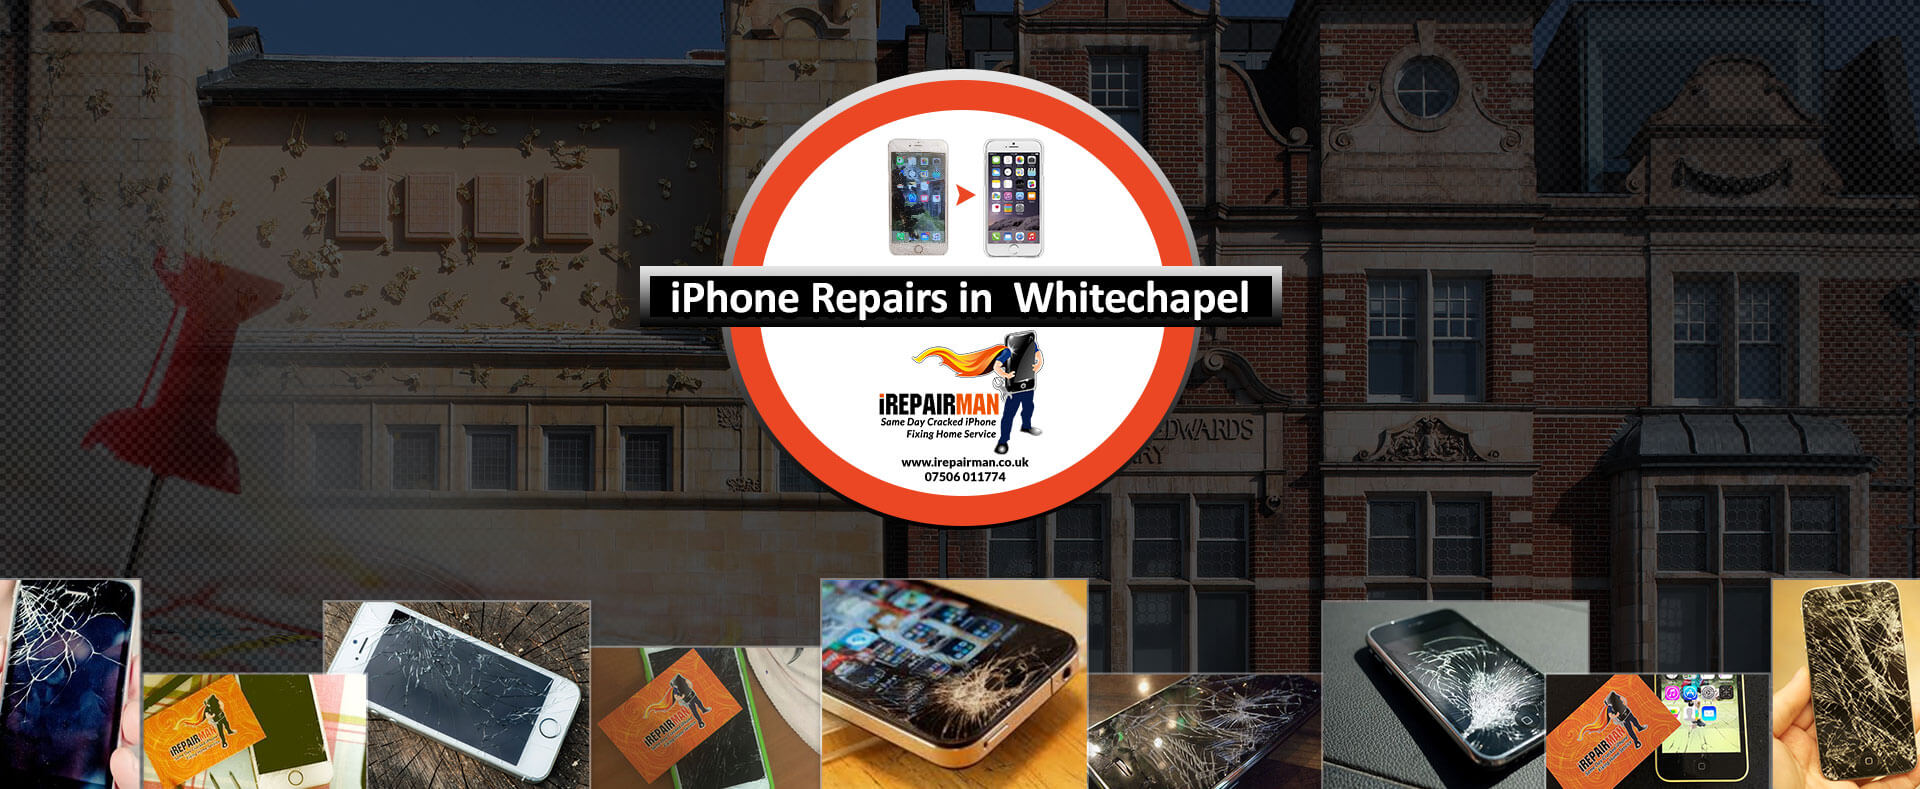 iPhone Repairs in Whitechapel